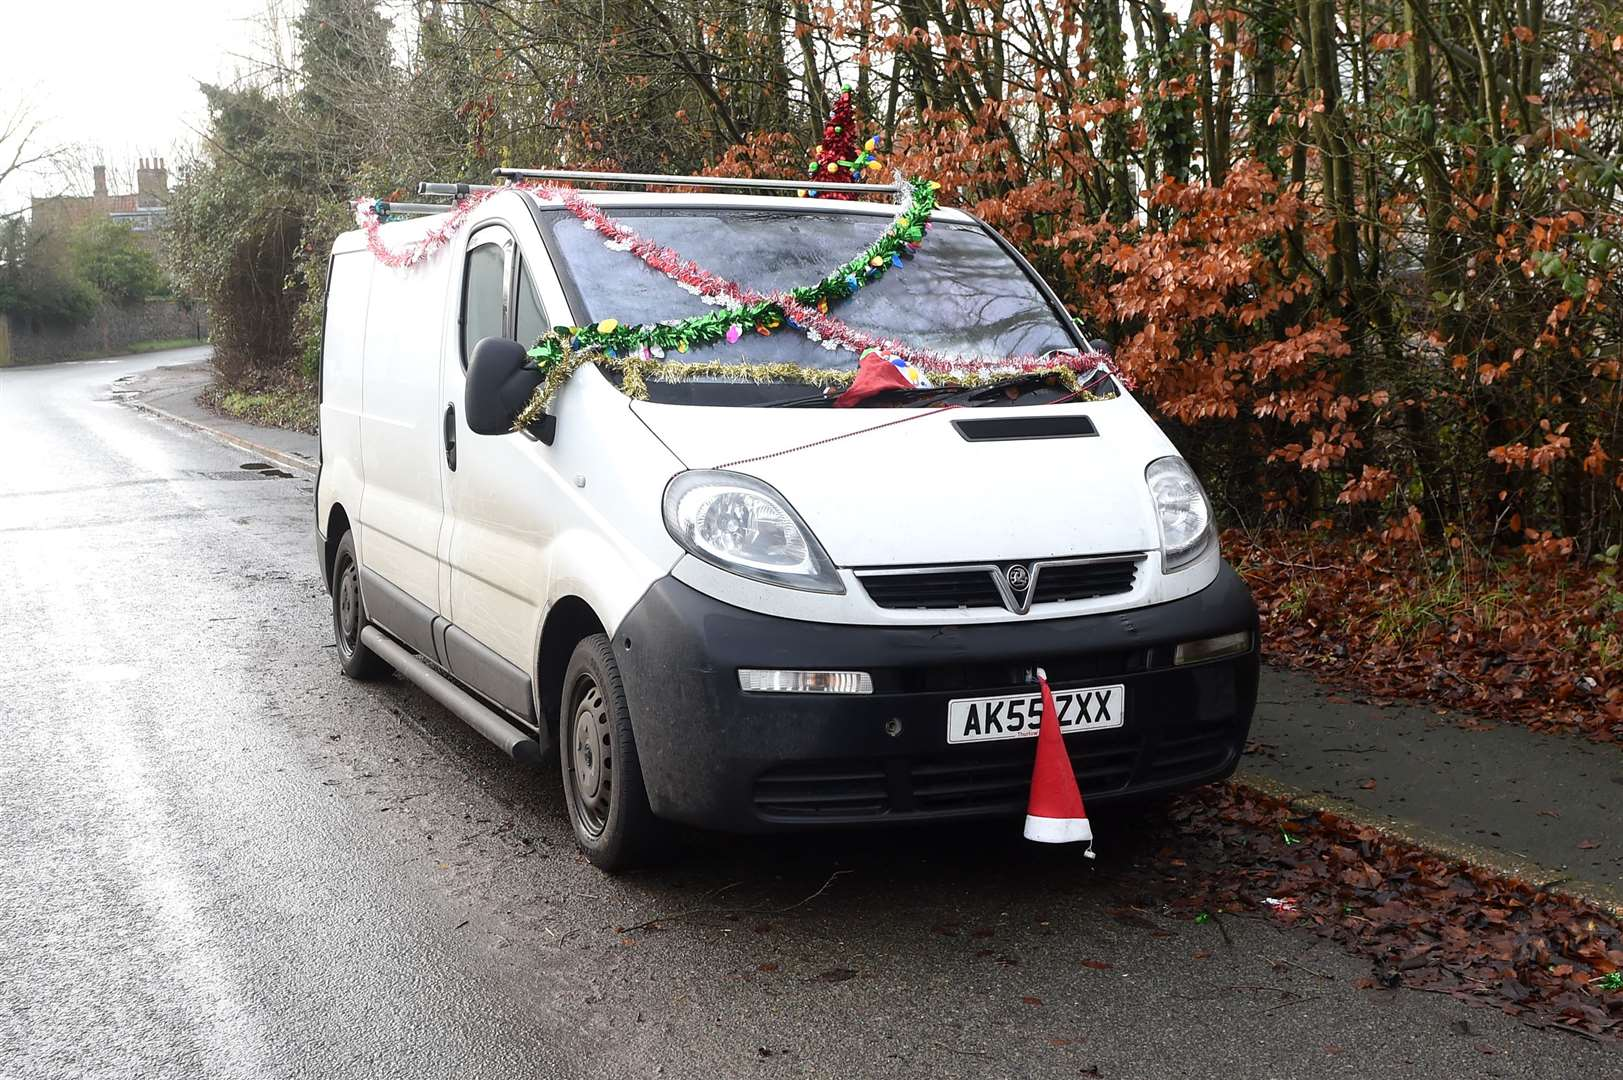 The decorated Vauxhall van that is parked in Banham Road, Kenninghall. Picture by Mecha Morton.